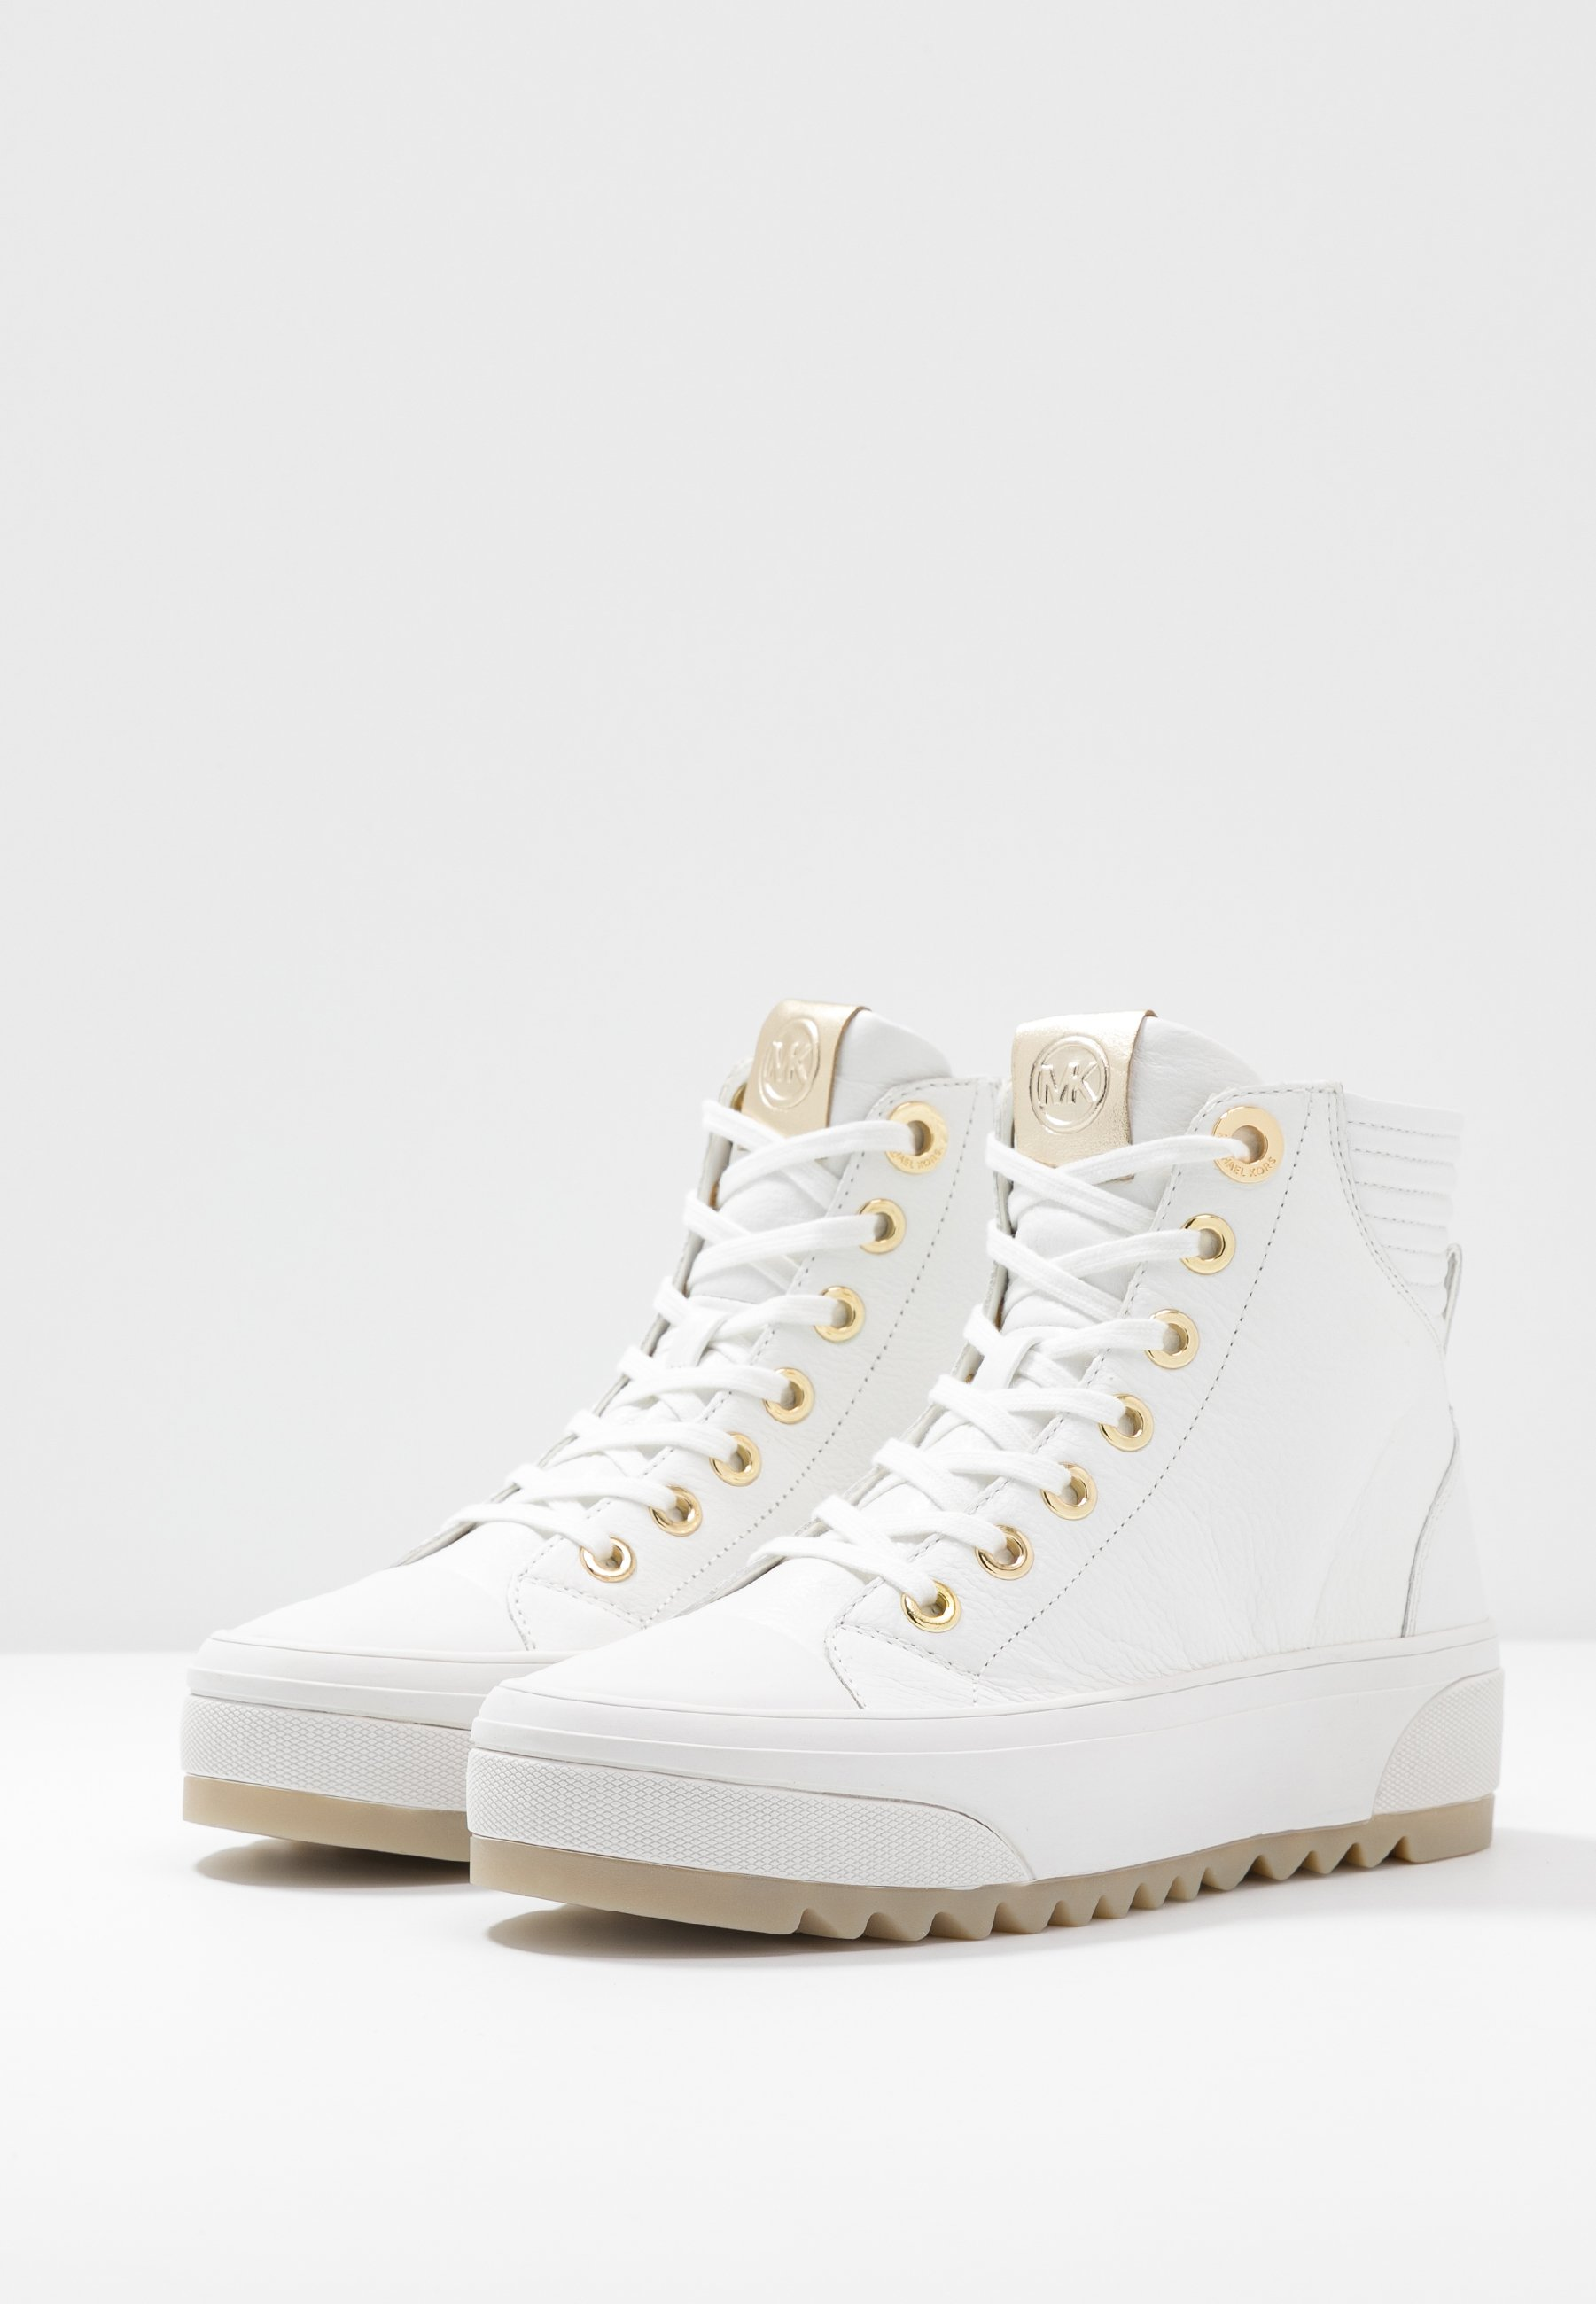 Michael Kors Keegan - Høye Joggesko Optic White/gold